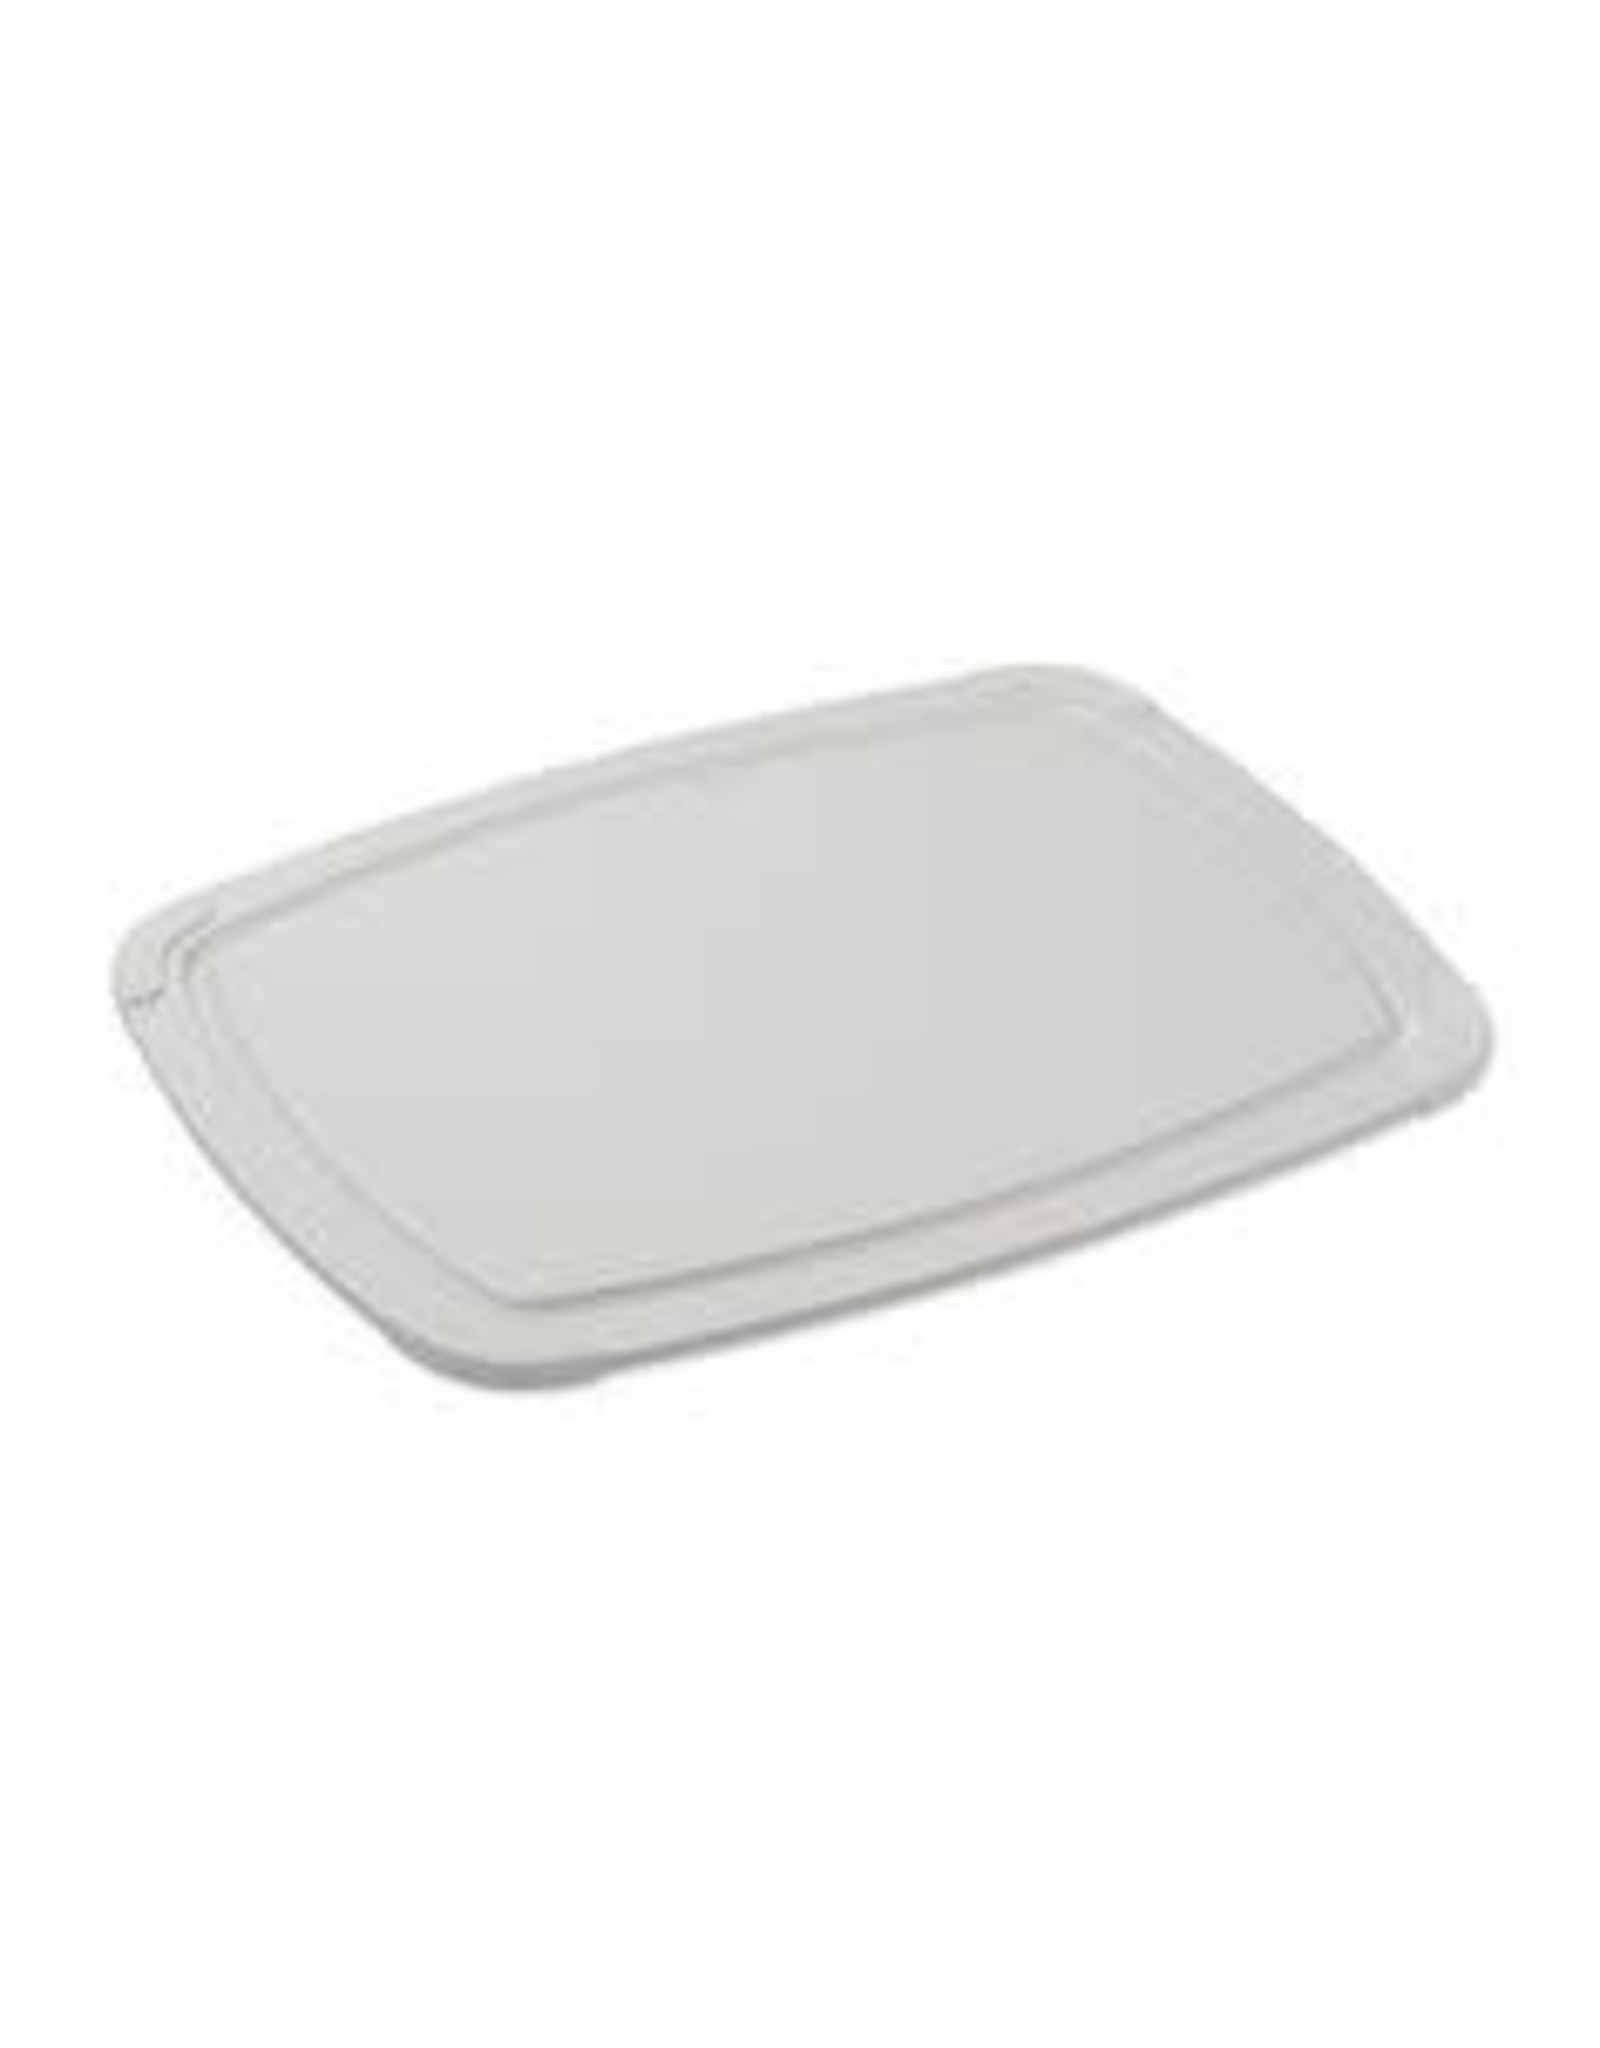 "Epicurean Epicurean Non Stick Poly Cutting Board 14.5""x11.25"" White"